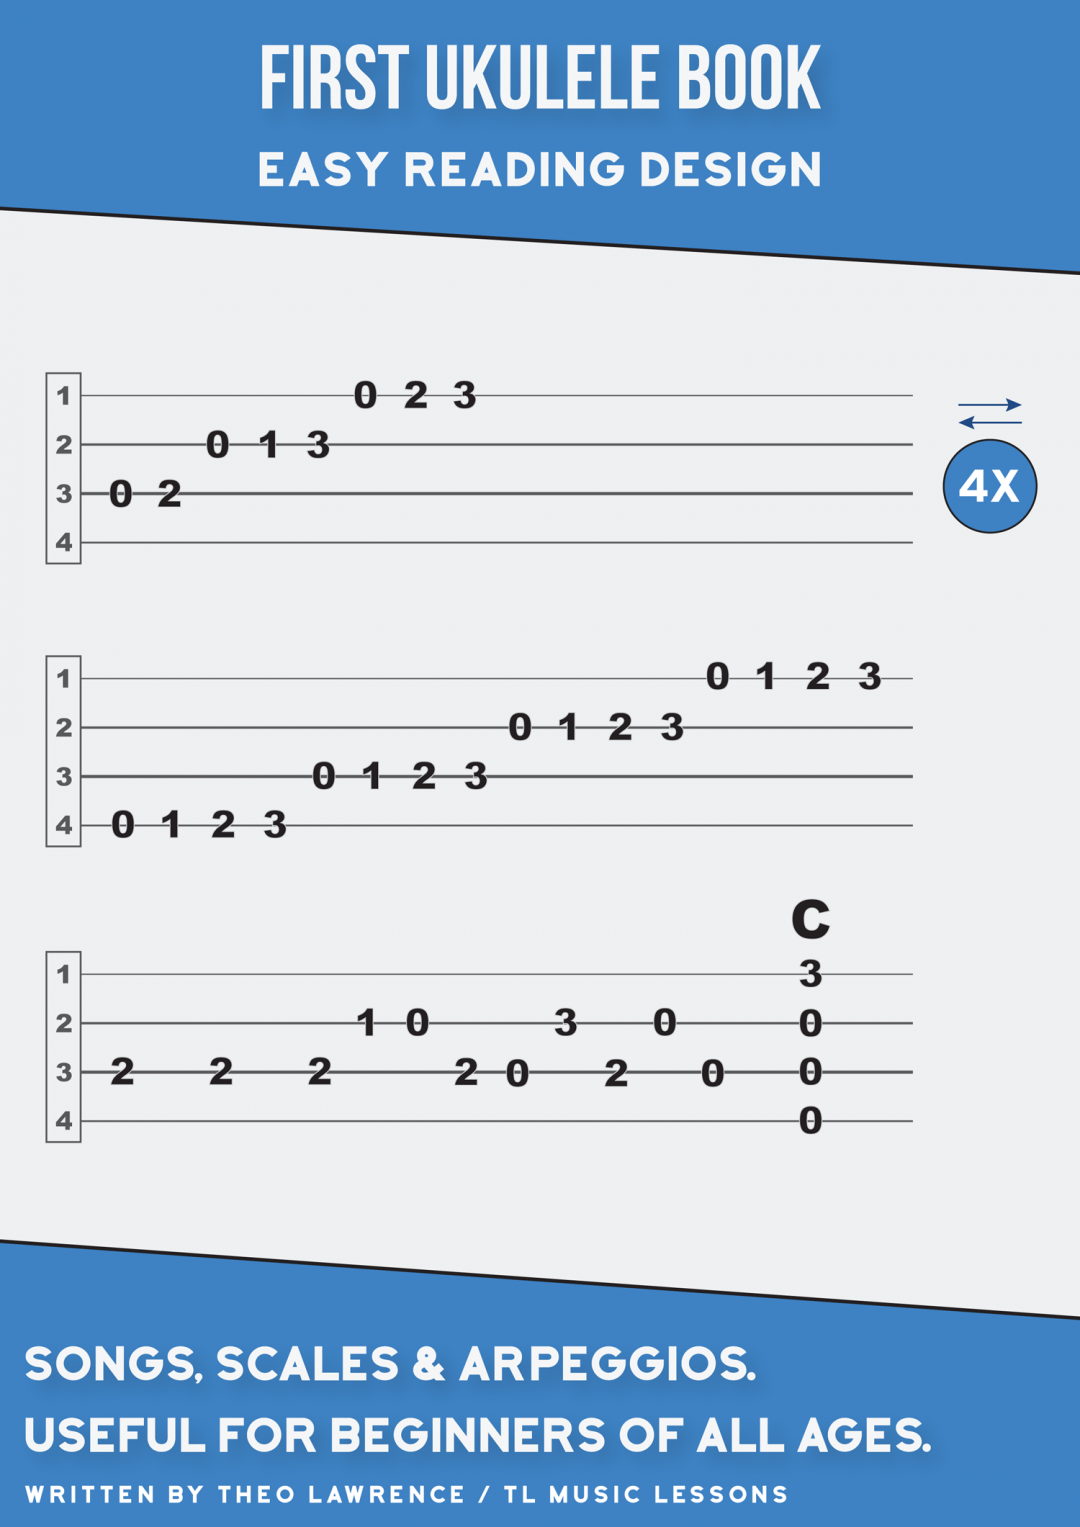 (PREMIUM) – First Ukulele Book – Easy Reading Scales & Melodies